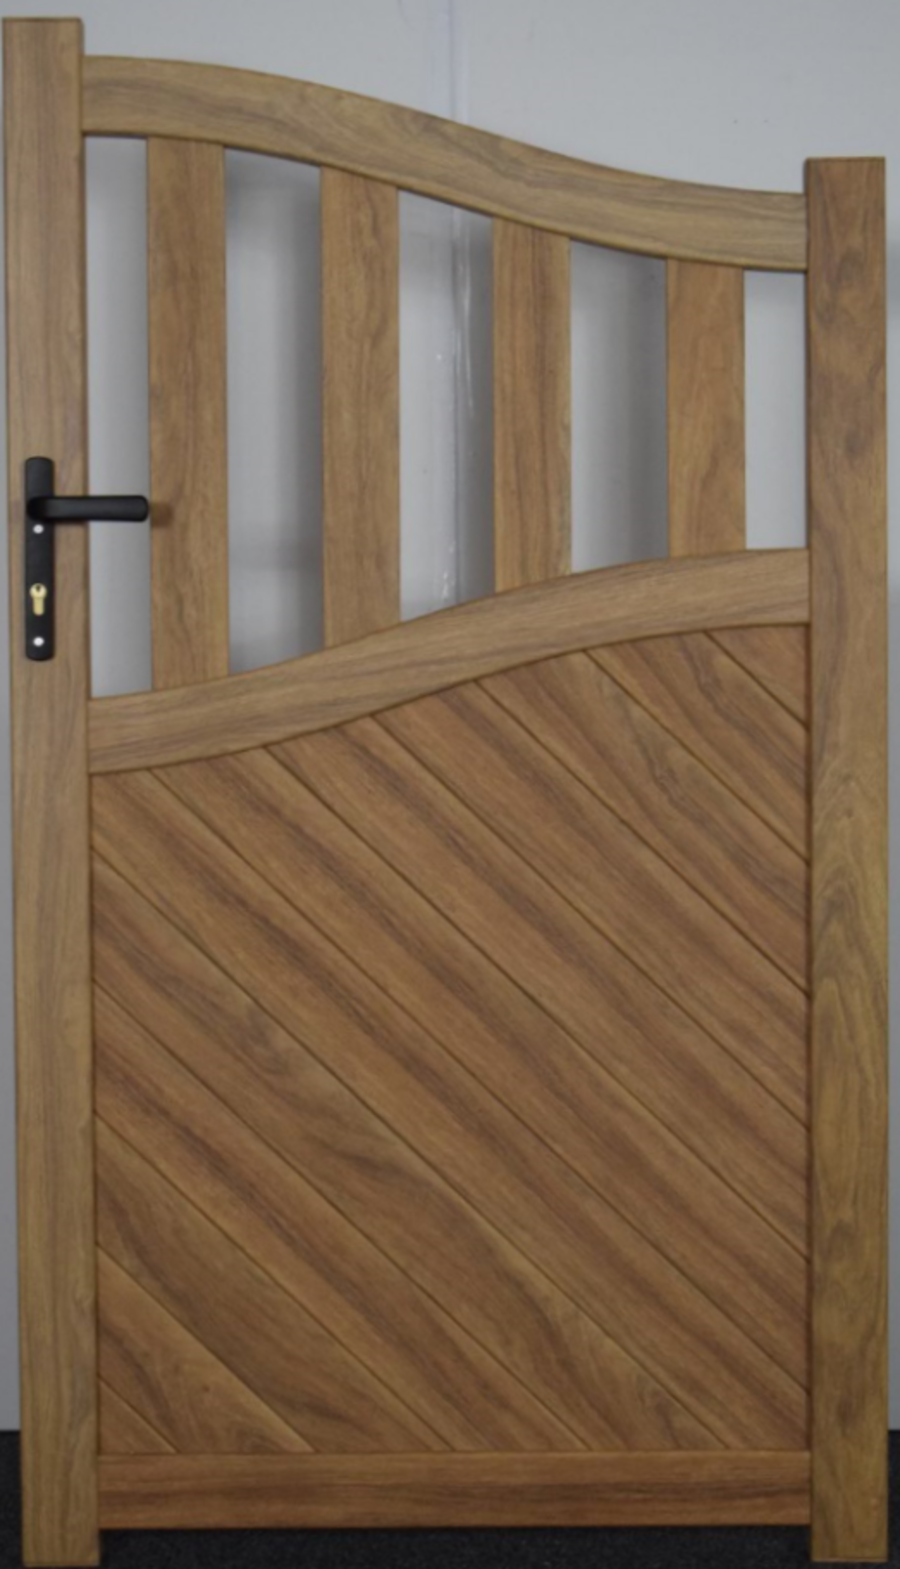 LOMOND Wood Effect Pedestrian Gate with Mixed Infill - Bell Curved Top RMG006PGw Light Oak